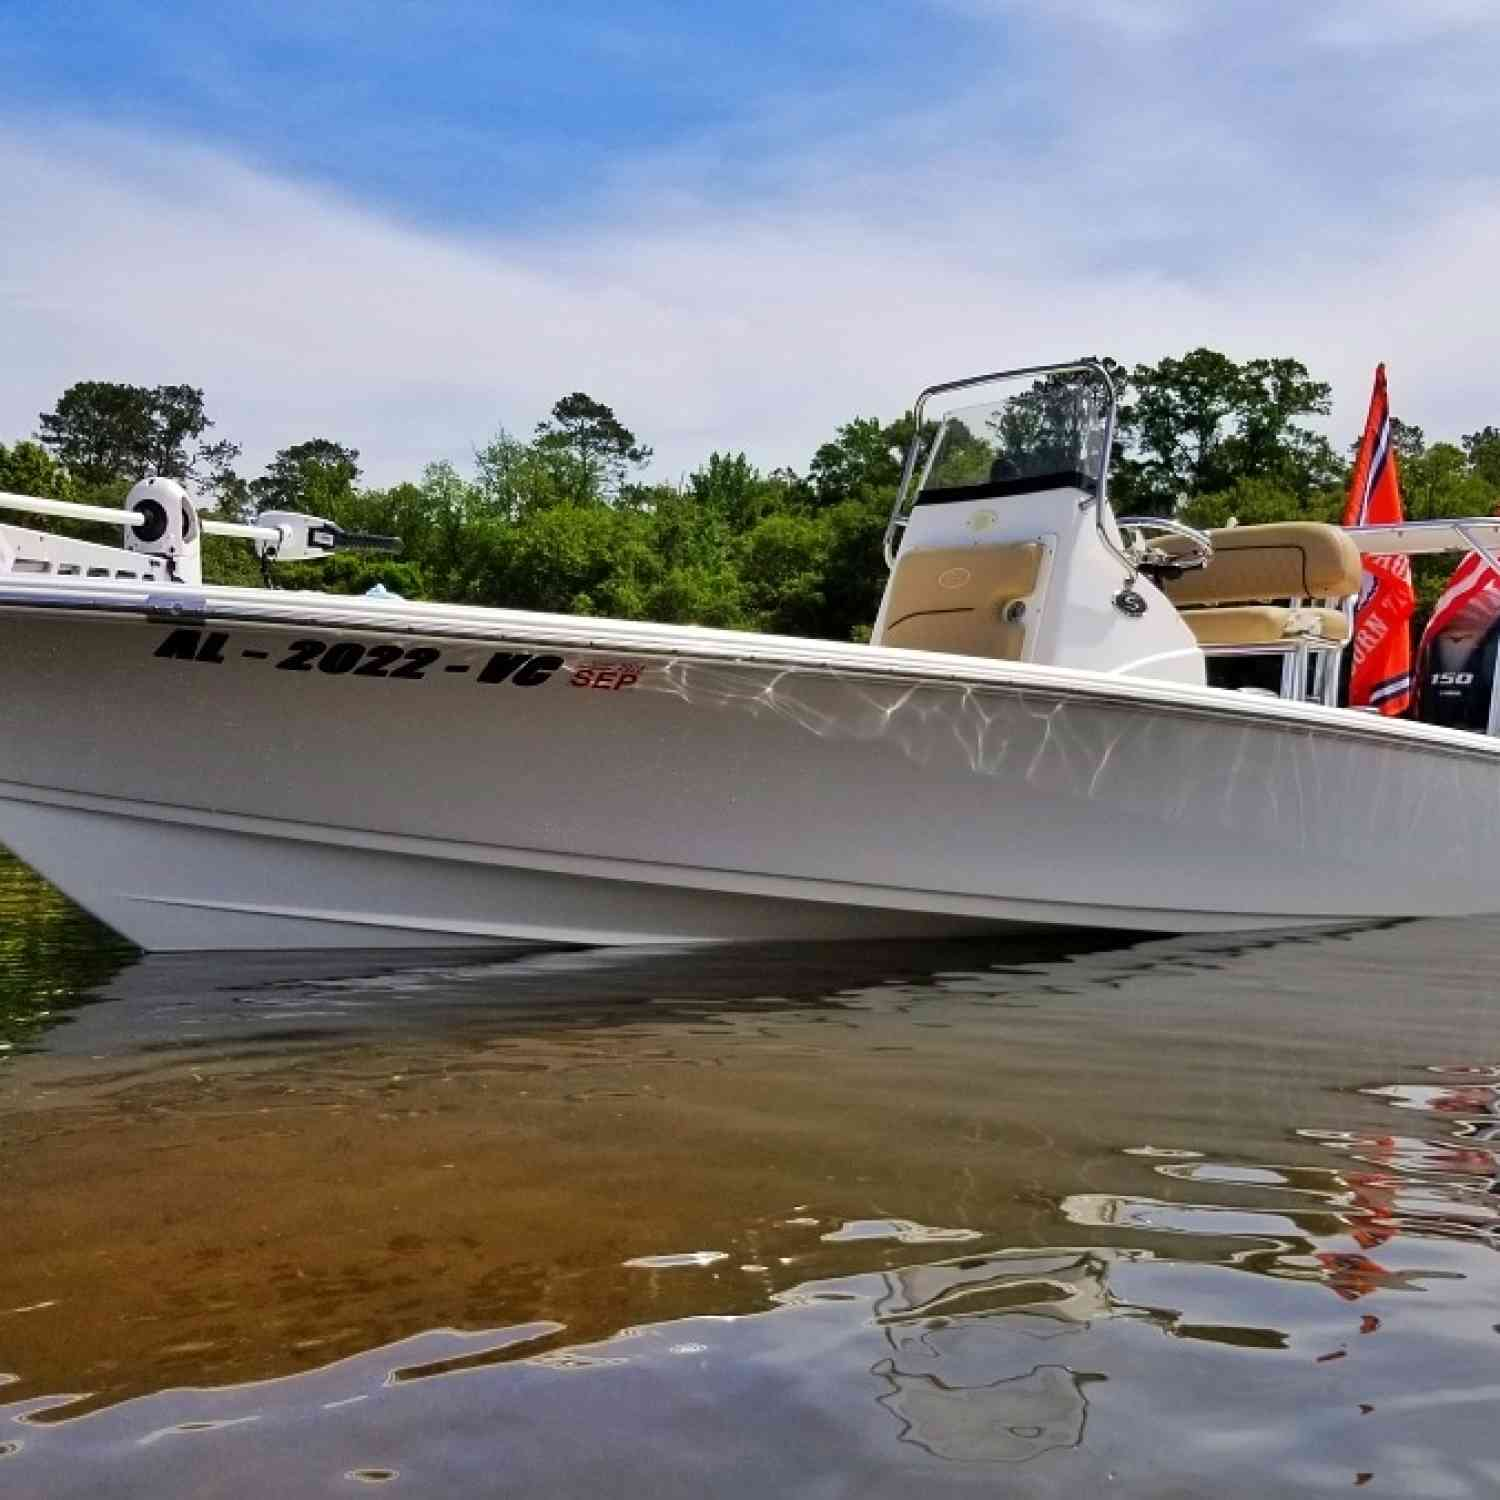 Title: Sandbar Saturday - On board their Sportsman Tournament 214 Bay Boat - Location: Lake Harding, Valley, AL. Participating in the Photo Contest #SportsmanSeptember2020